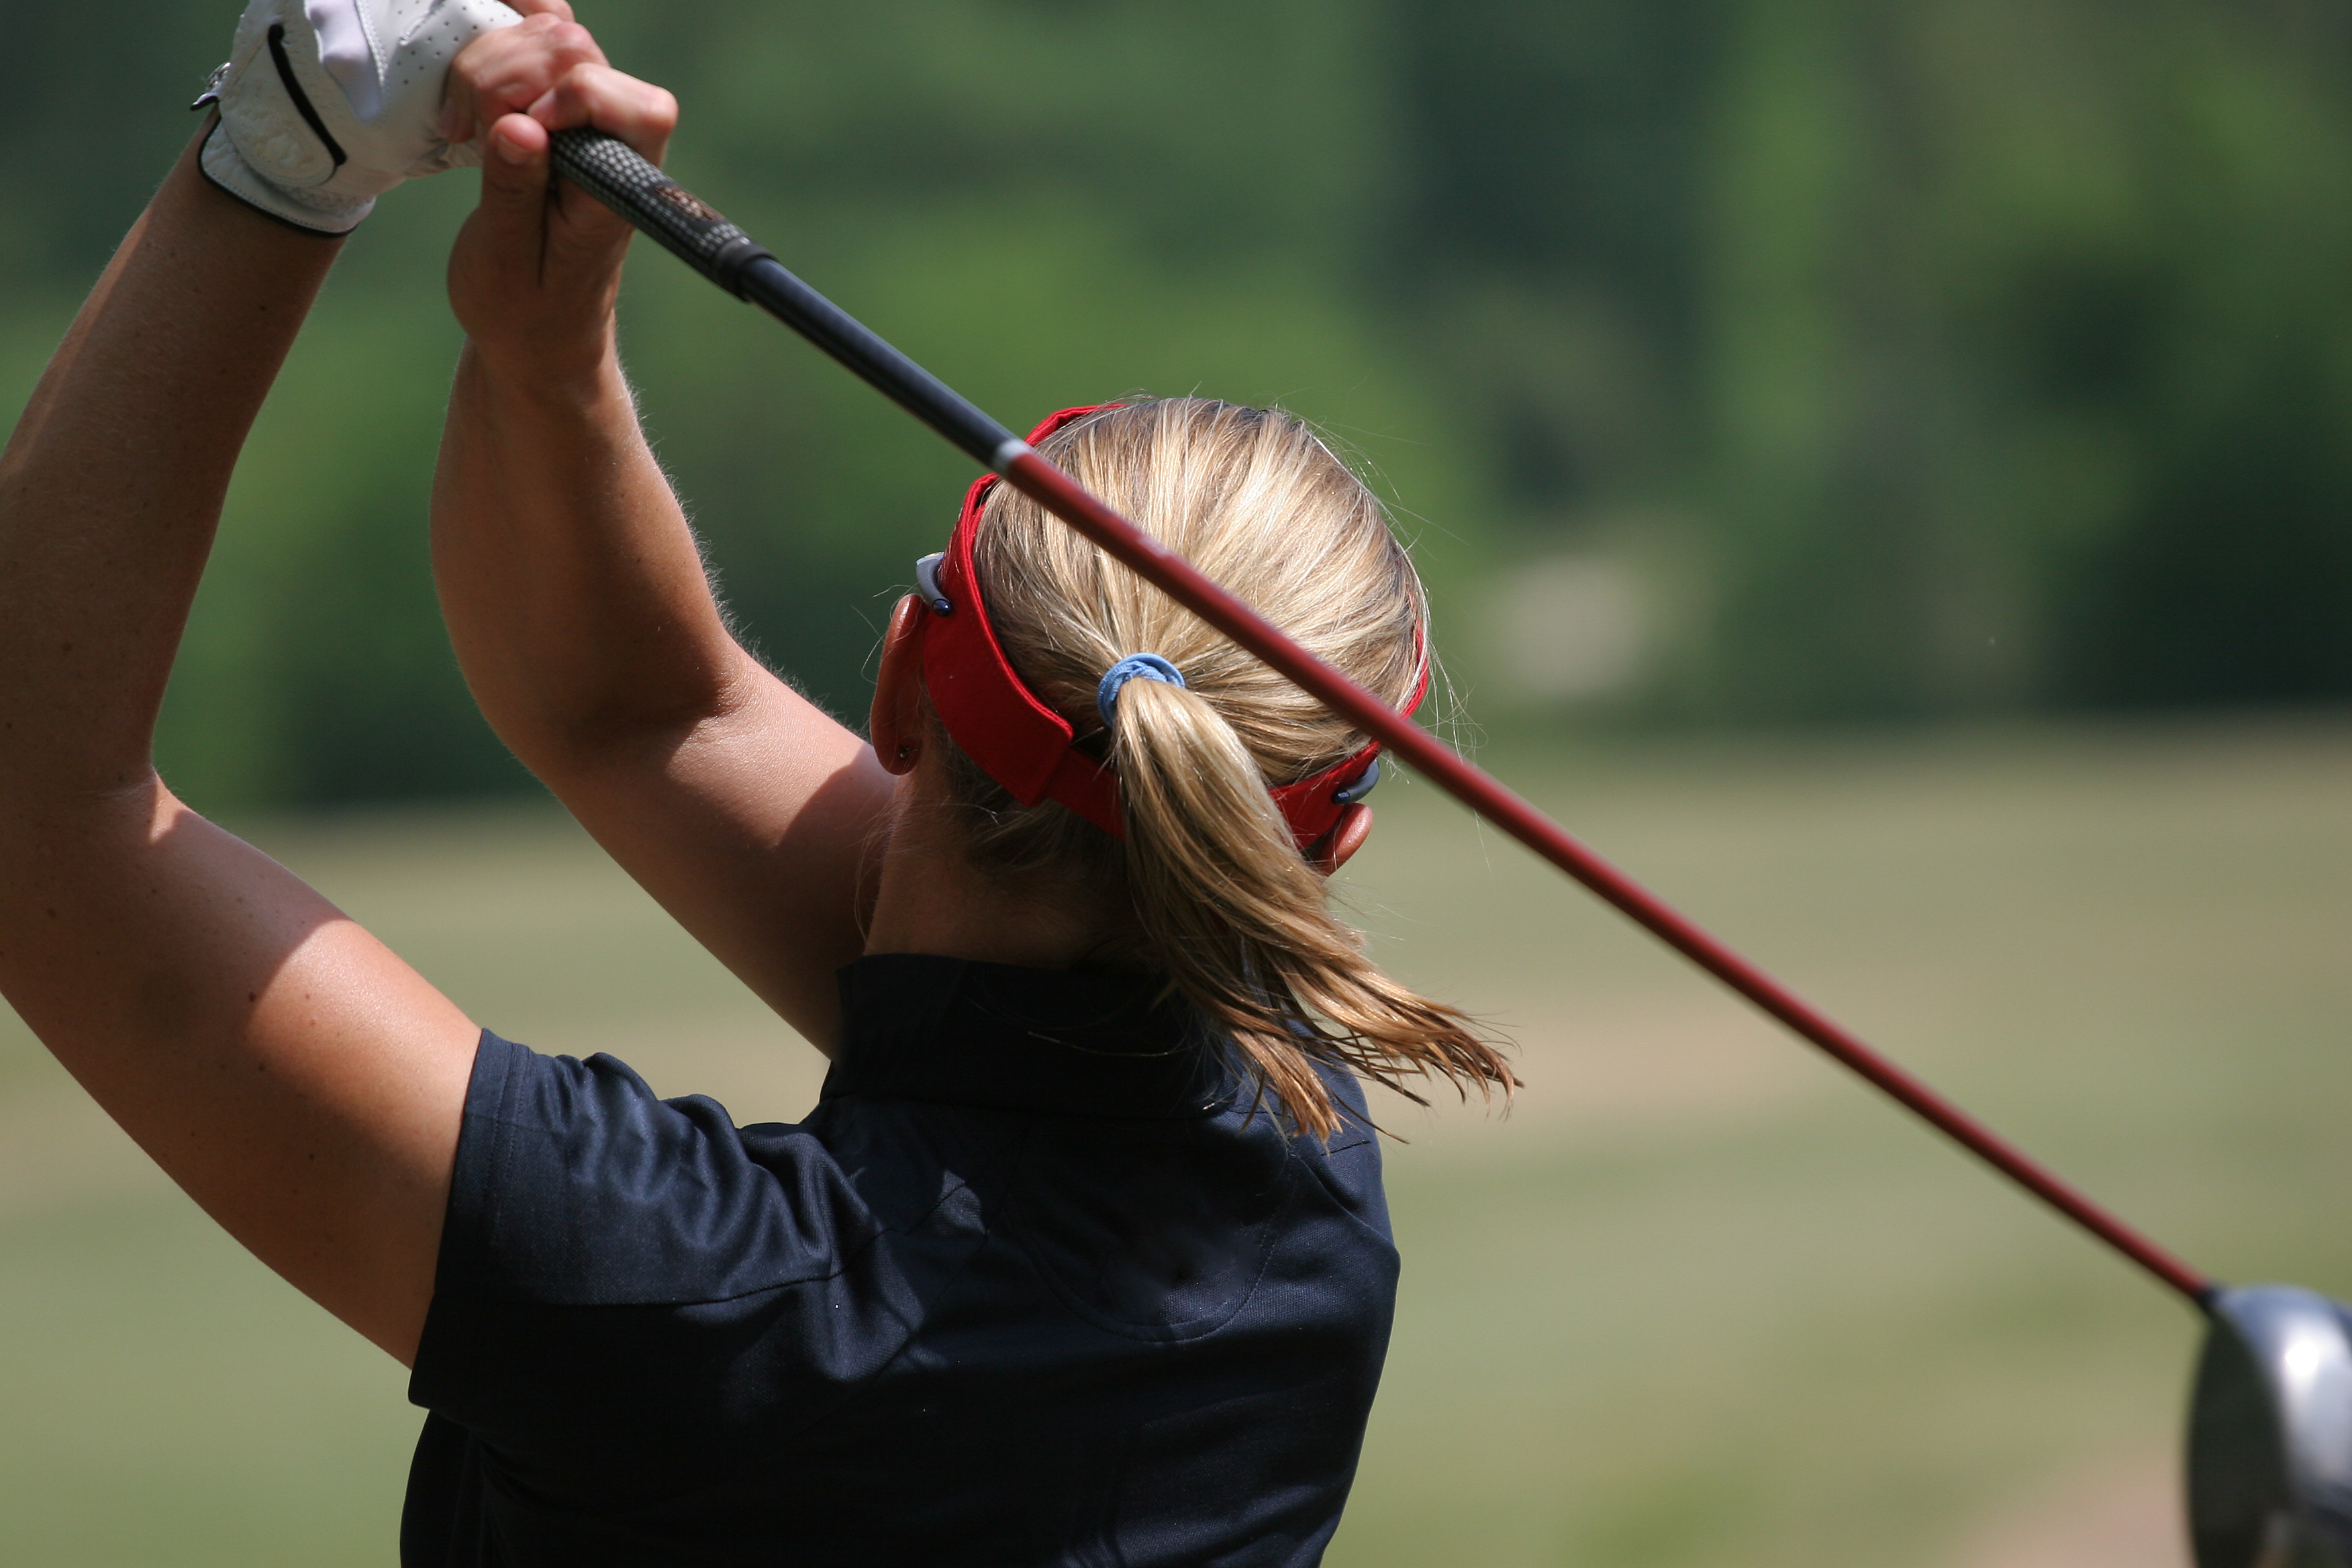 Get a Grip on Common Golf Injuries